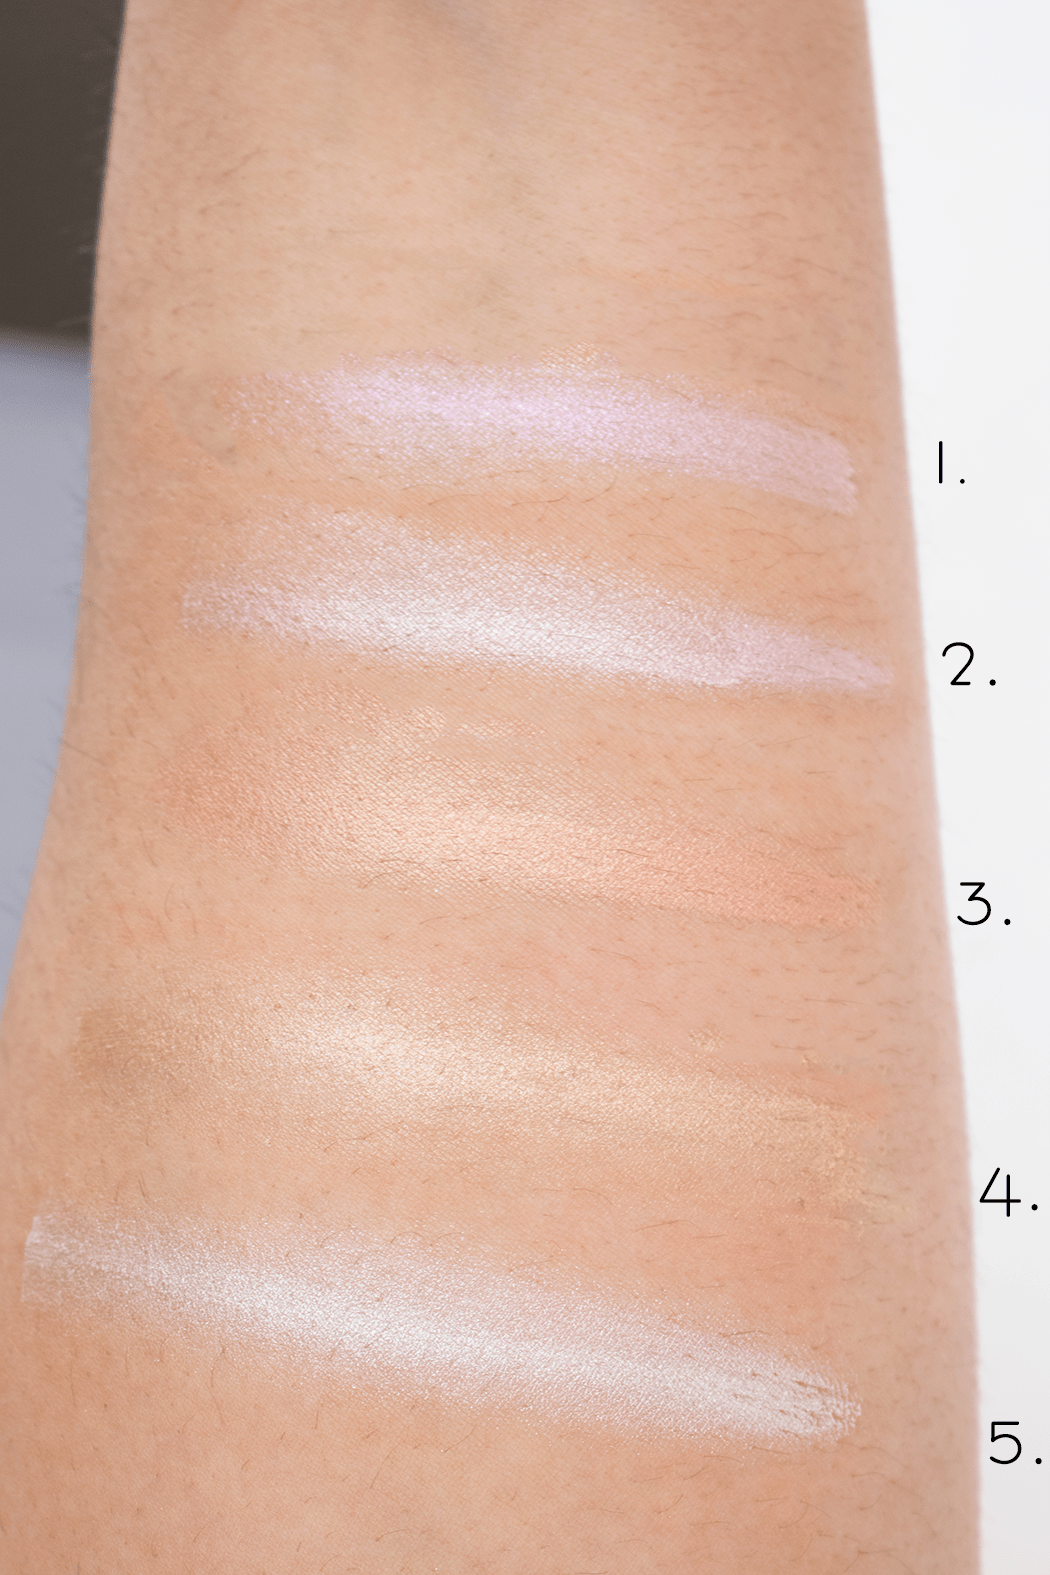 Jouer Mermaid Glow Palette swatches | 1. Crystal 2. Seashell 3. Champagne 4. Tiare 5. Camellia